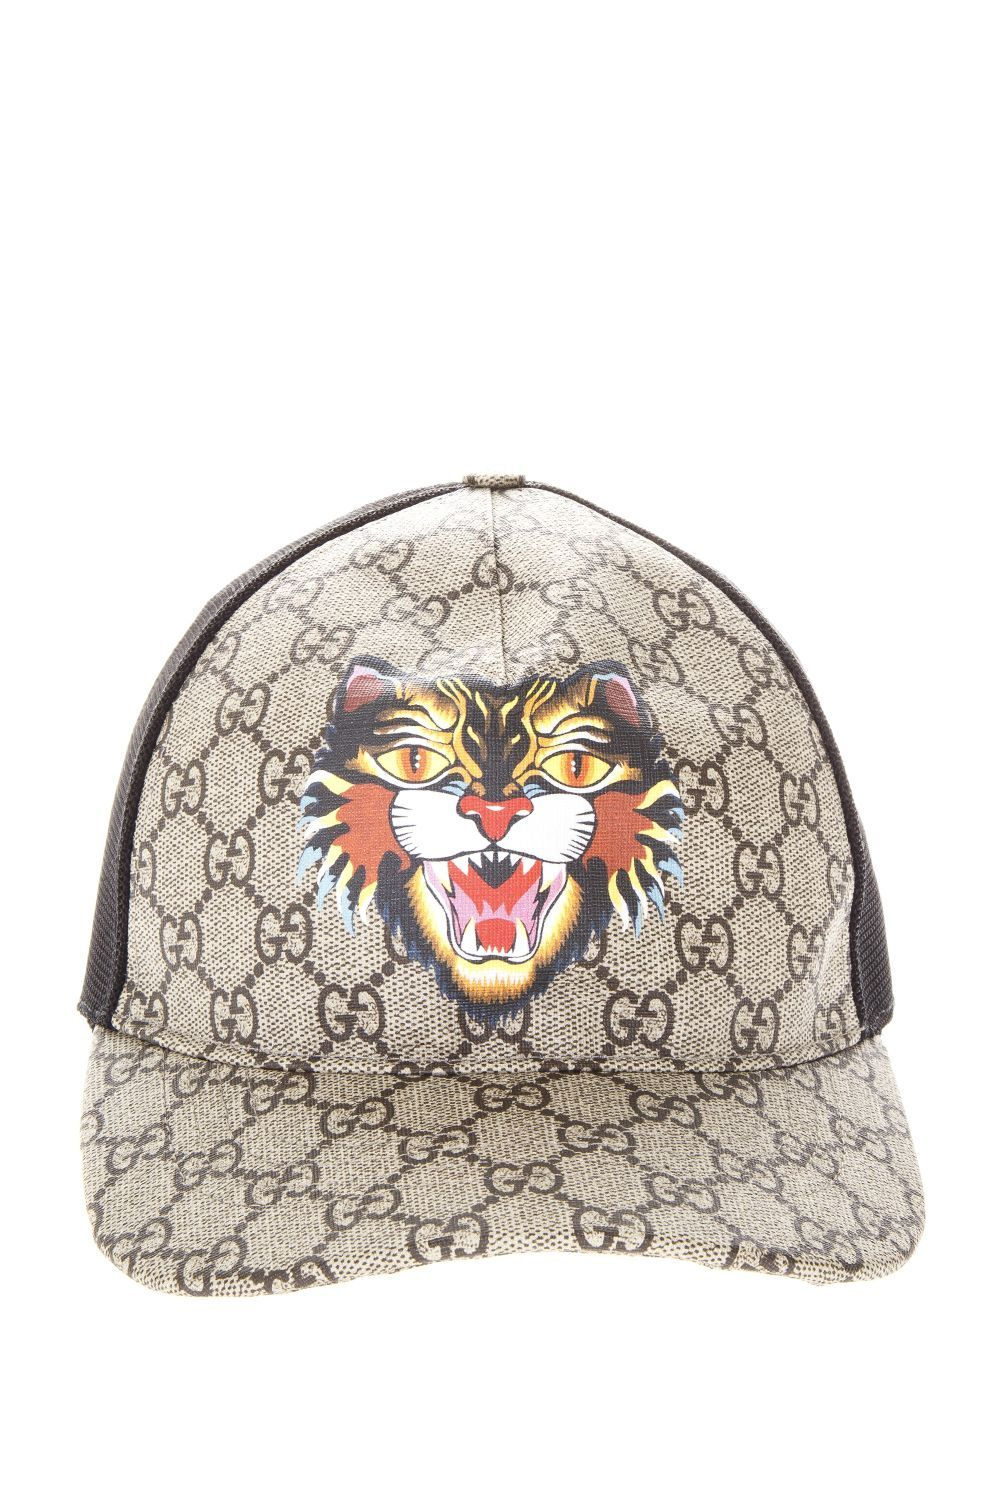 b8c06dd550f GUCCI GG SUPREME HAT WITH ANGRY CAT PRINT.  gucci